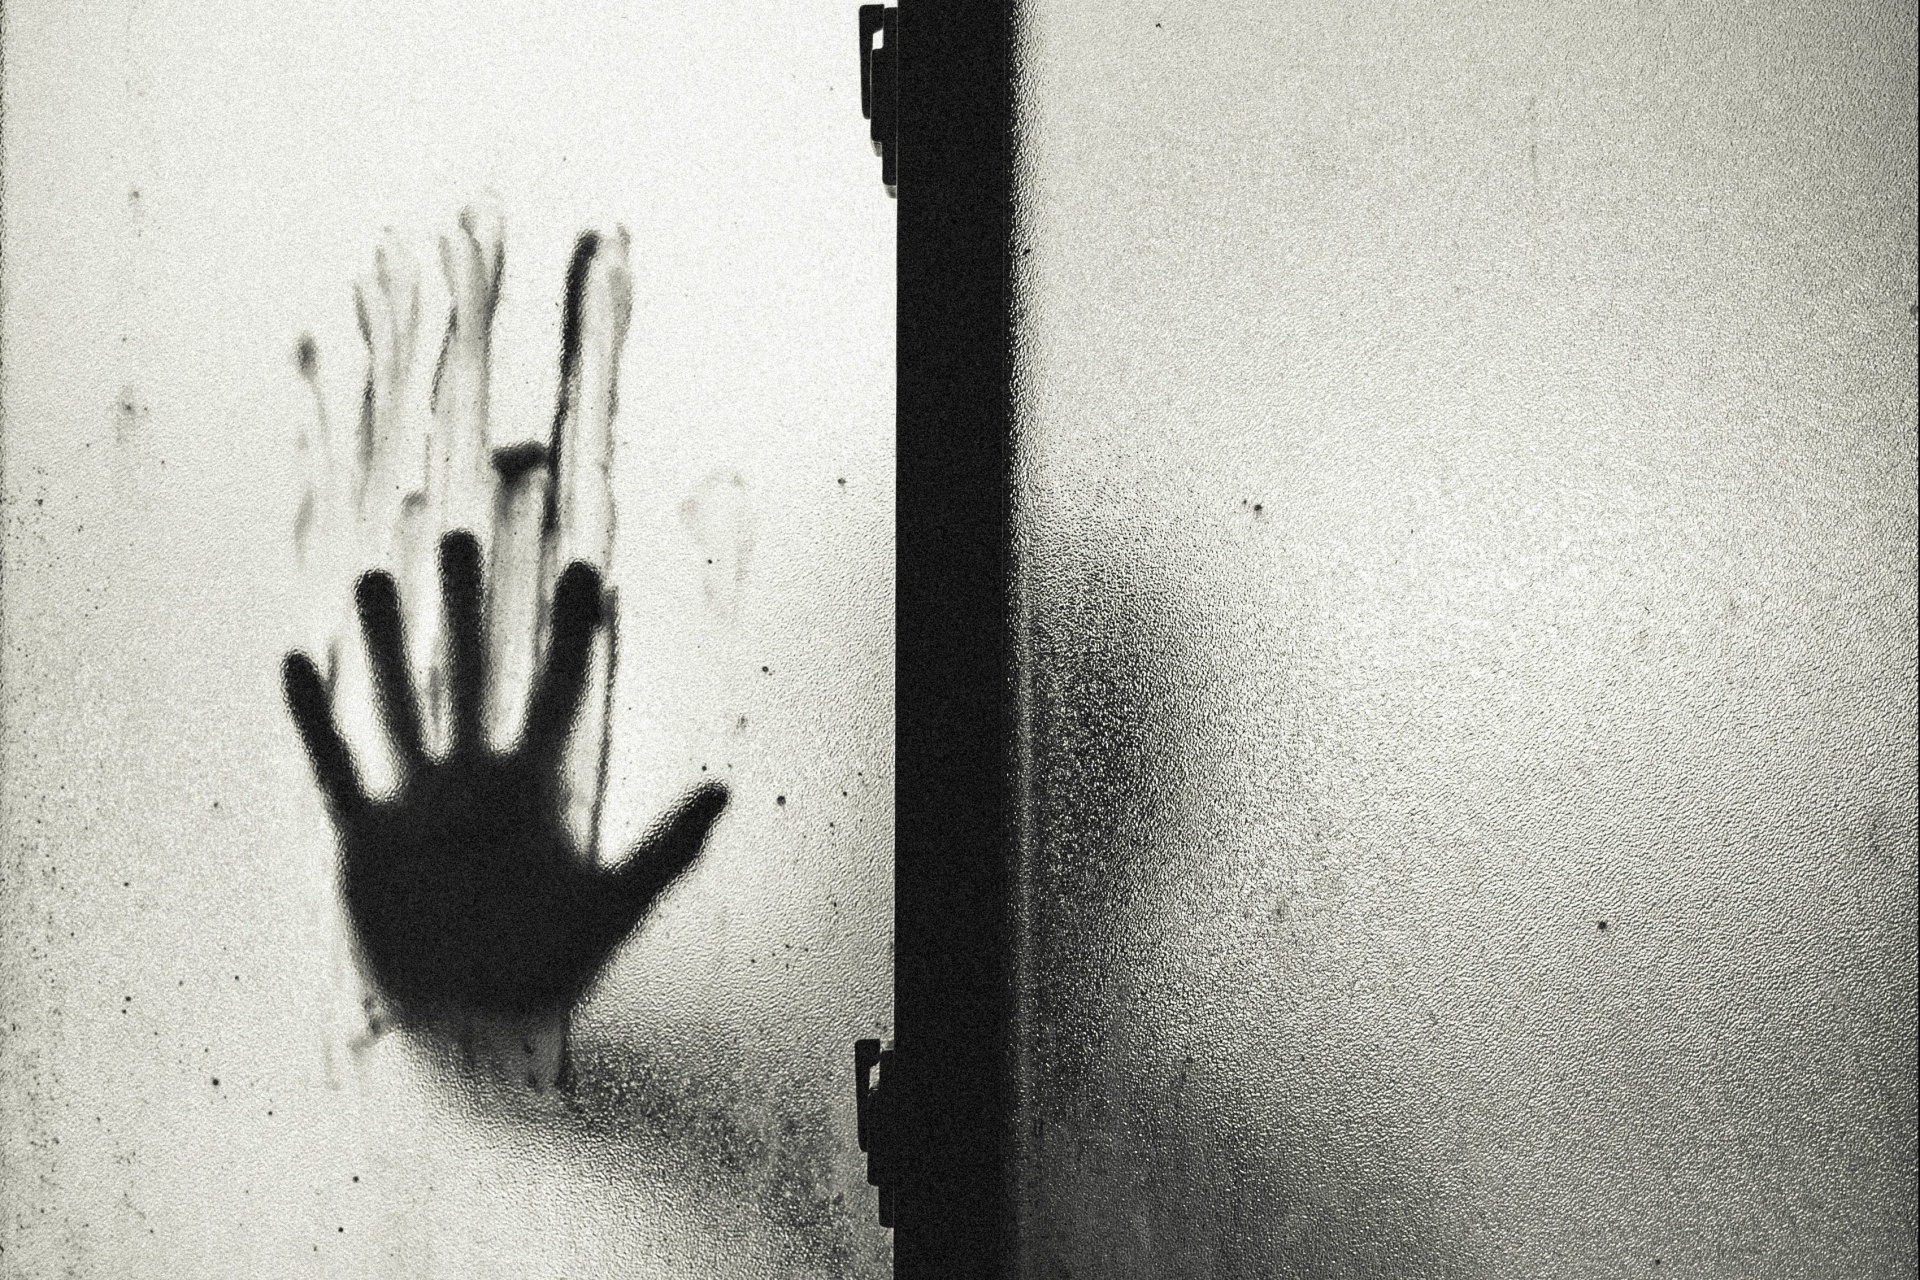 17 People Reveal Their Creepy Real Life Experiences With Murderers